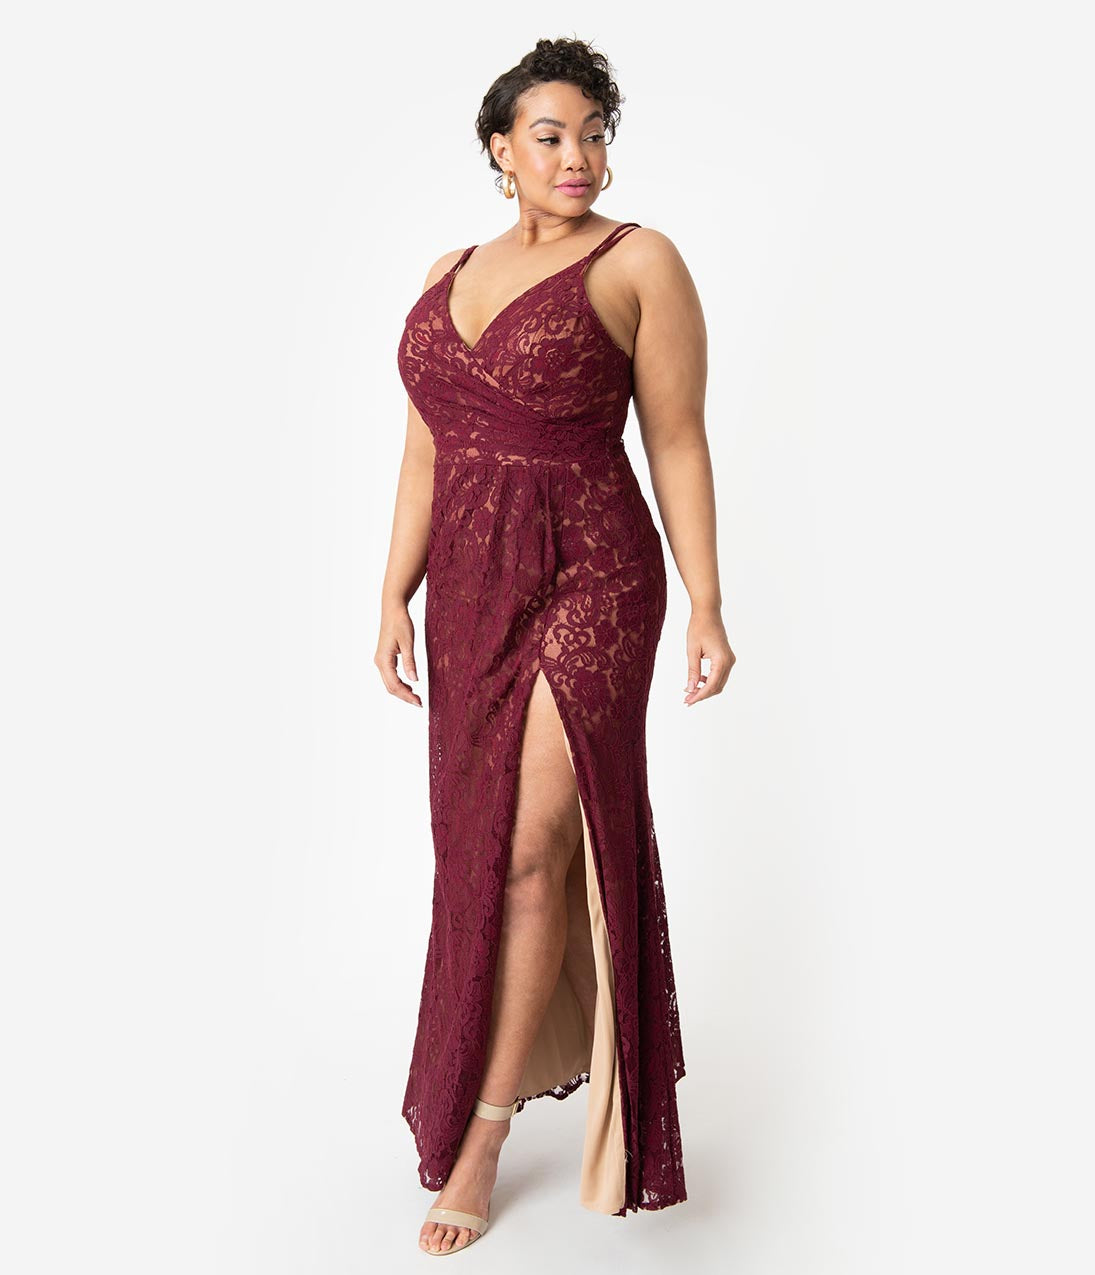 1930s Dresses | 30s Art Deco Dress Burgundy Lace Sexy Sleeveless Side Slit Long Dress $130.00 AT vintagedancer.com